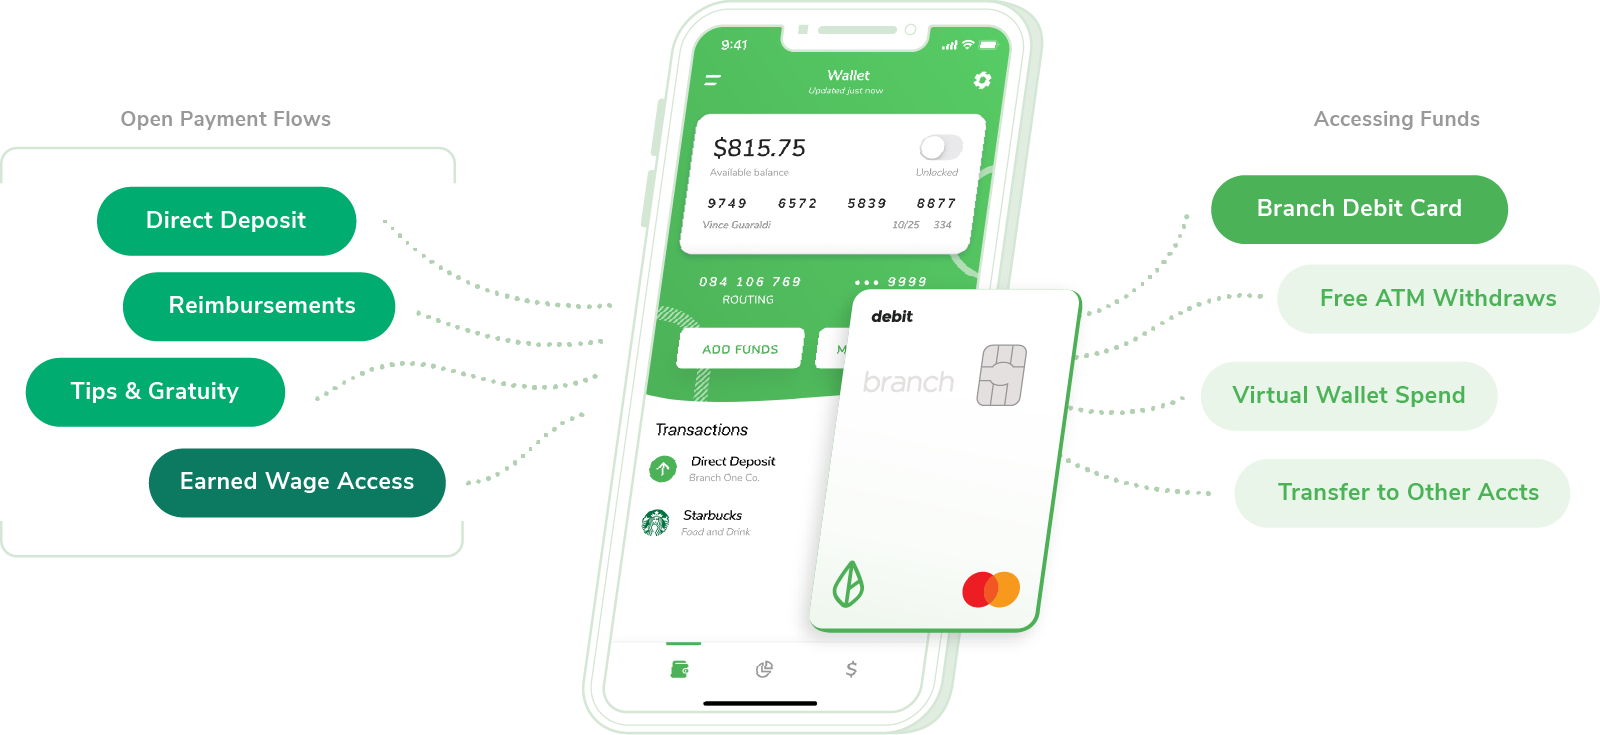 Digital tips and reimbursements, no-fee banking, and earned wage access are just some of the tools in our fast, free, and flexible platform.